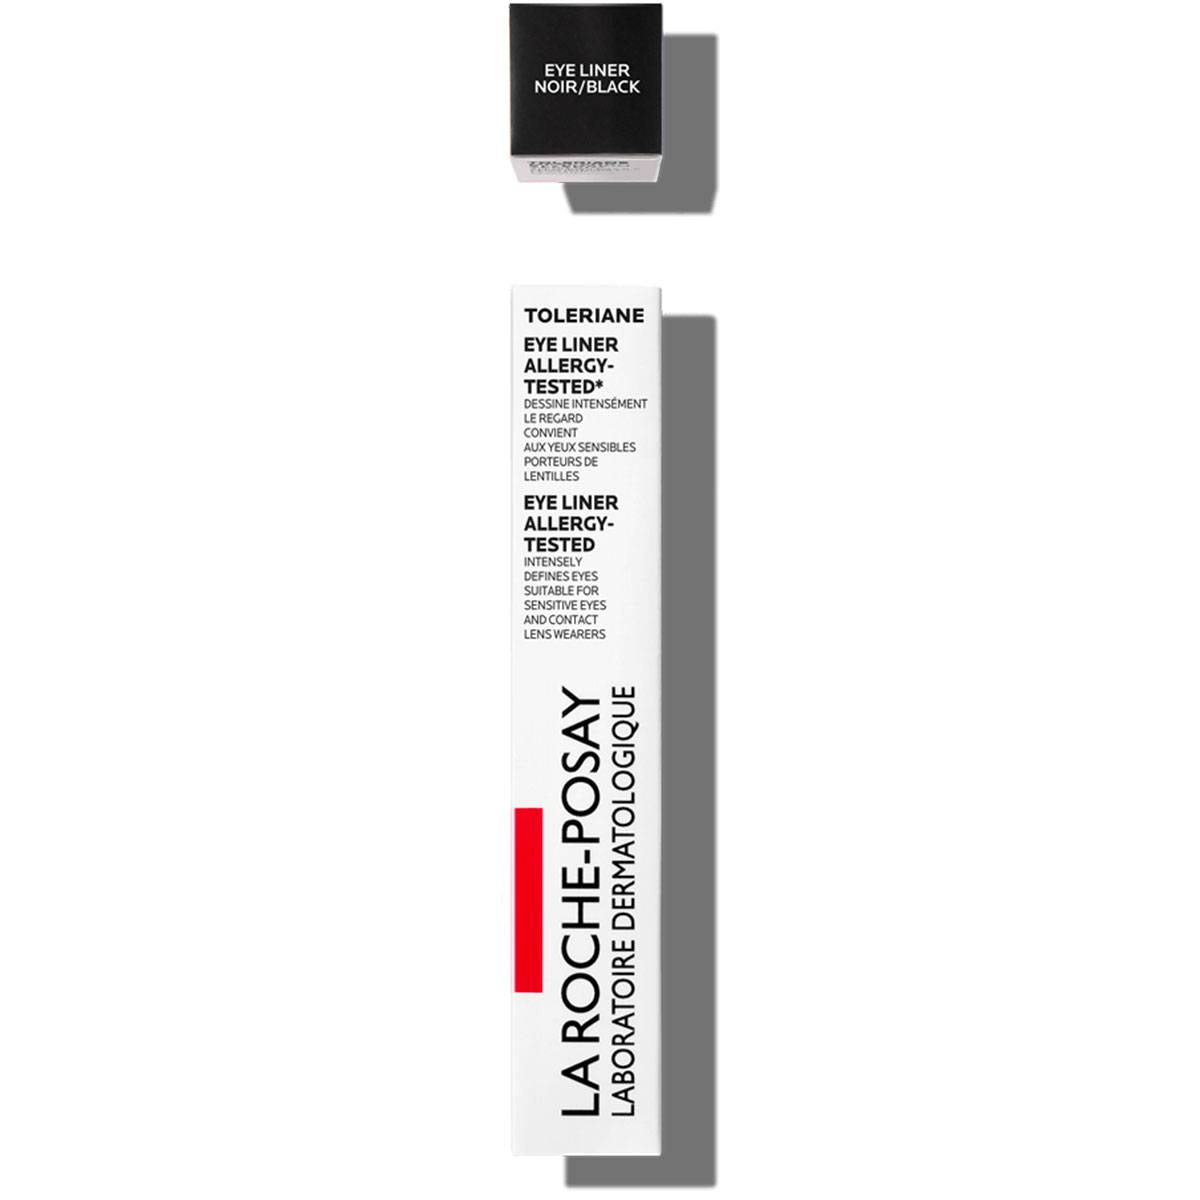 La Roche Posay Sensitive Toleriane Make up EYELINER_Black_343342240304